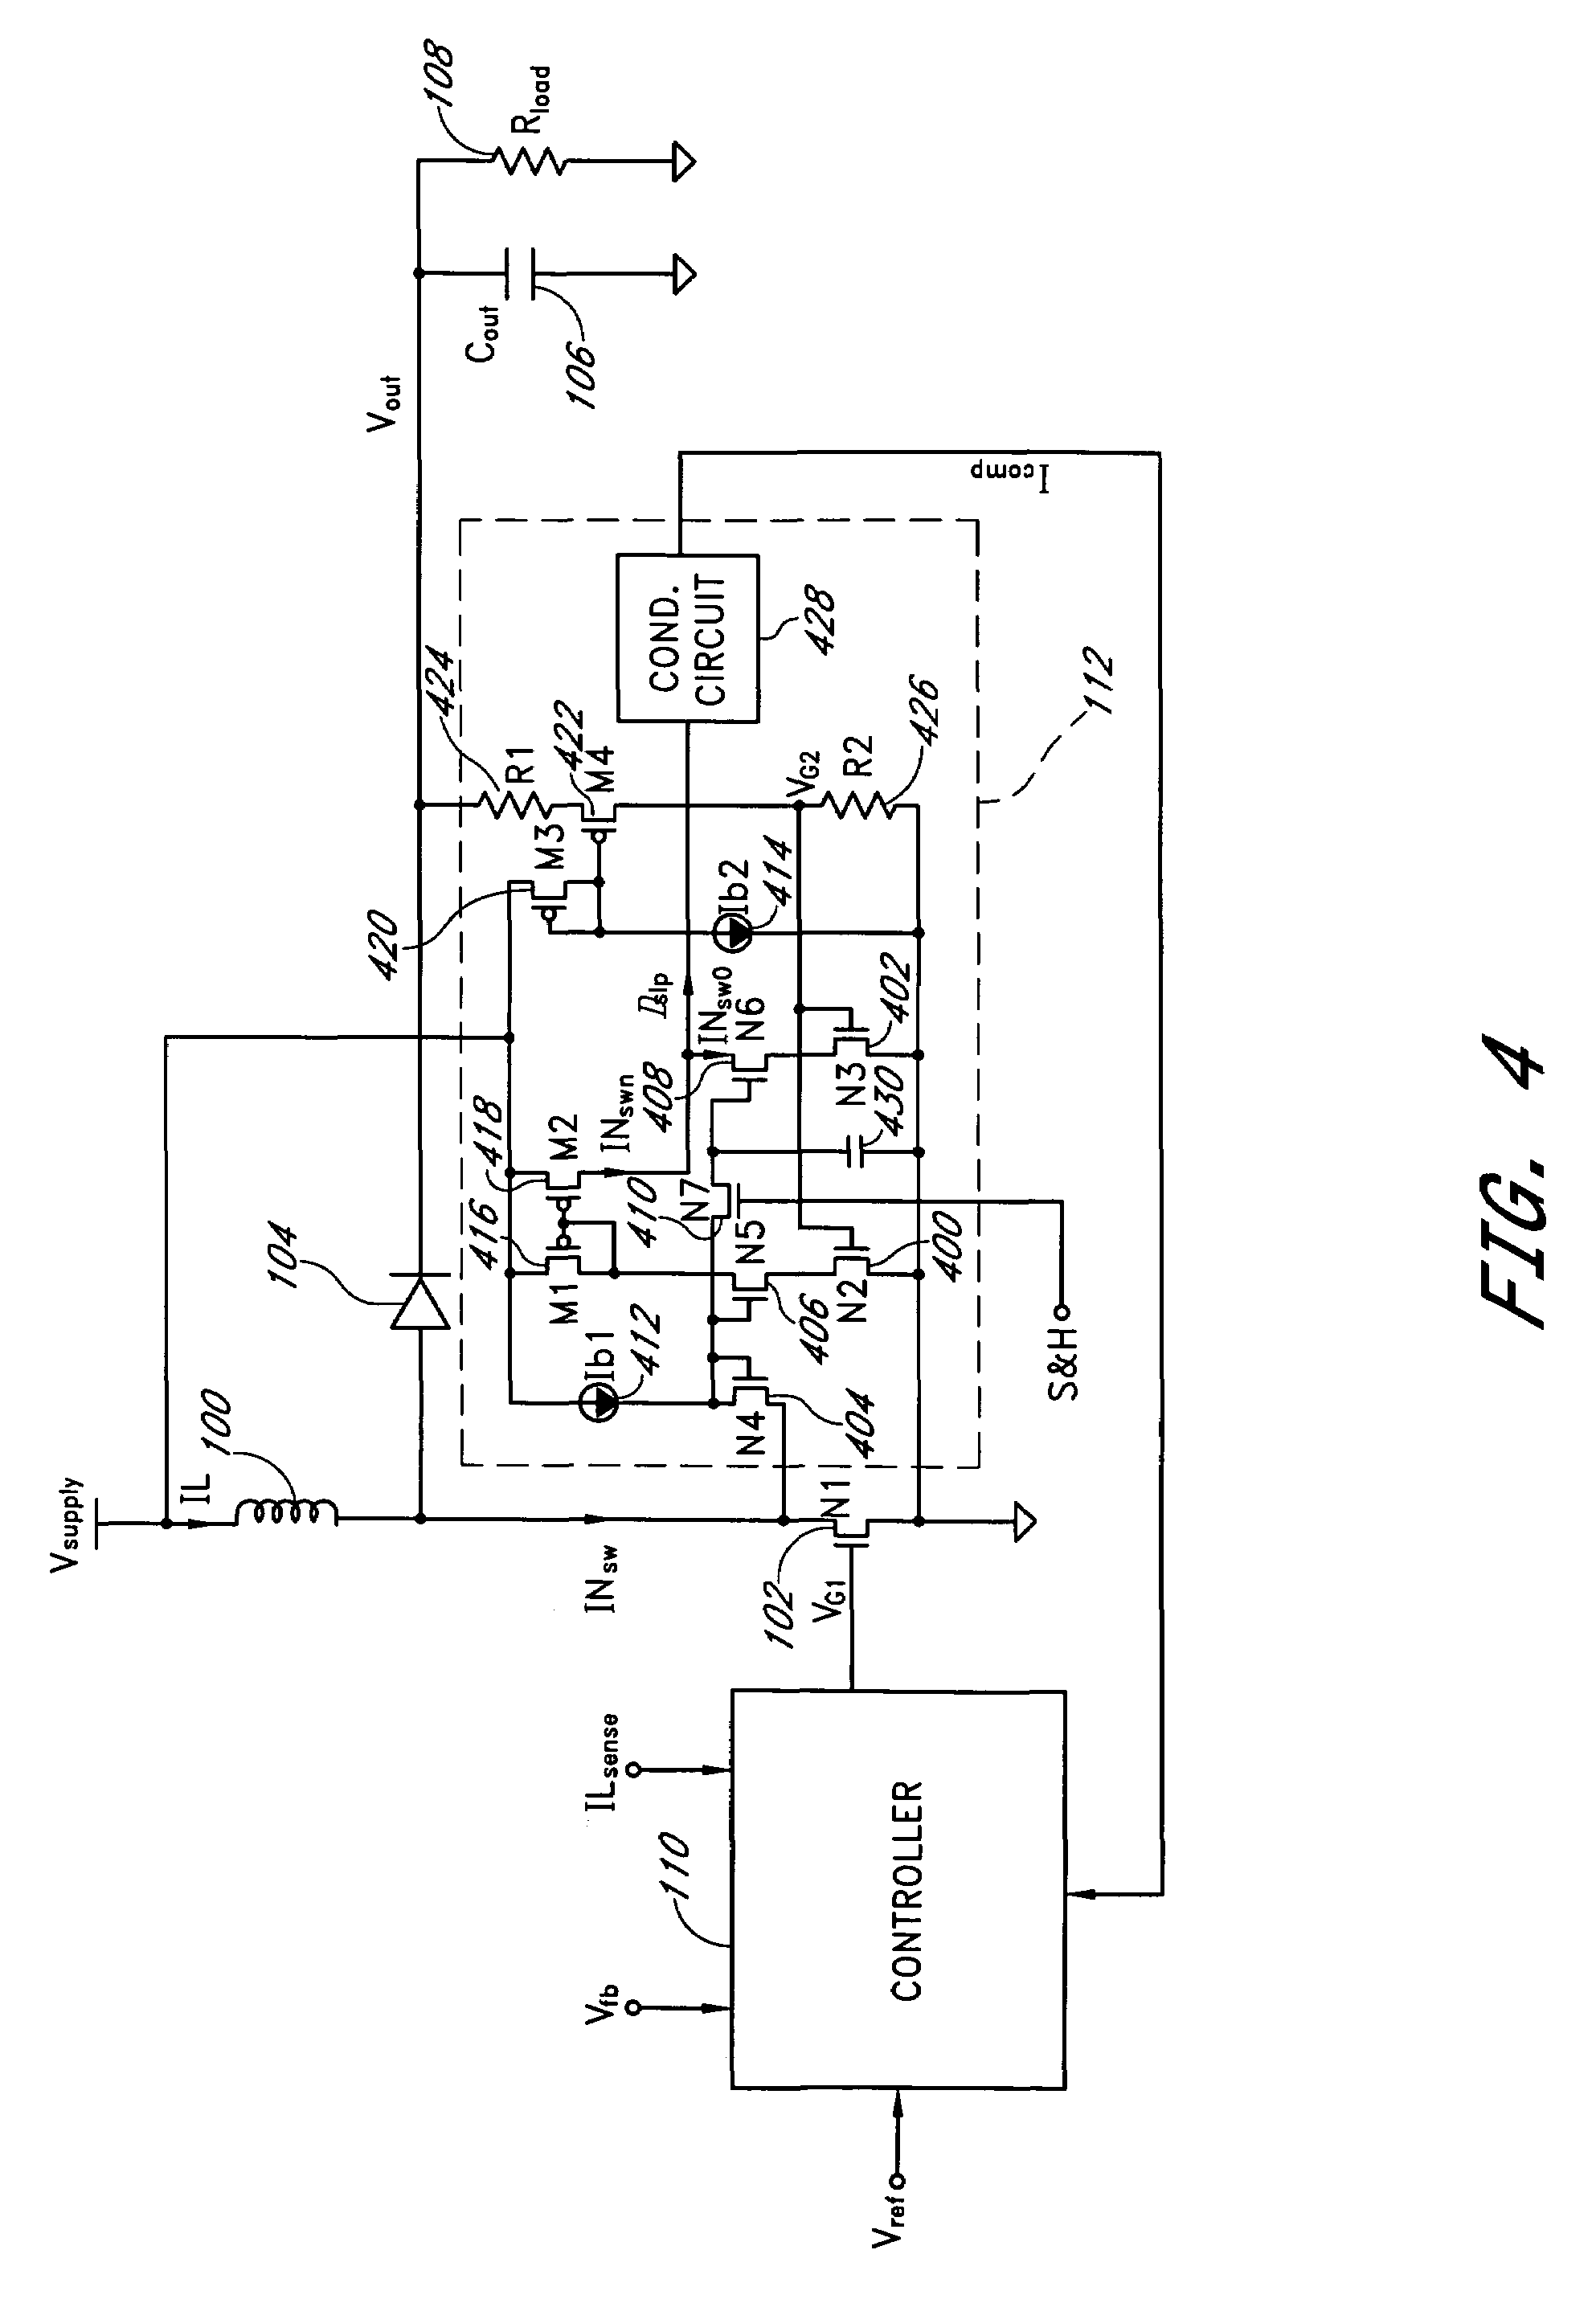 Patent Us7425819 Slope Compensation Circuit Google Patents Led Ramping Drawing